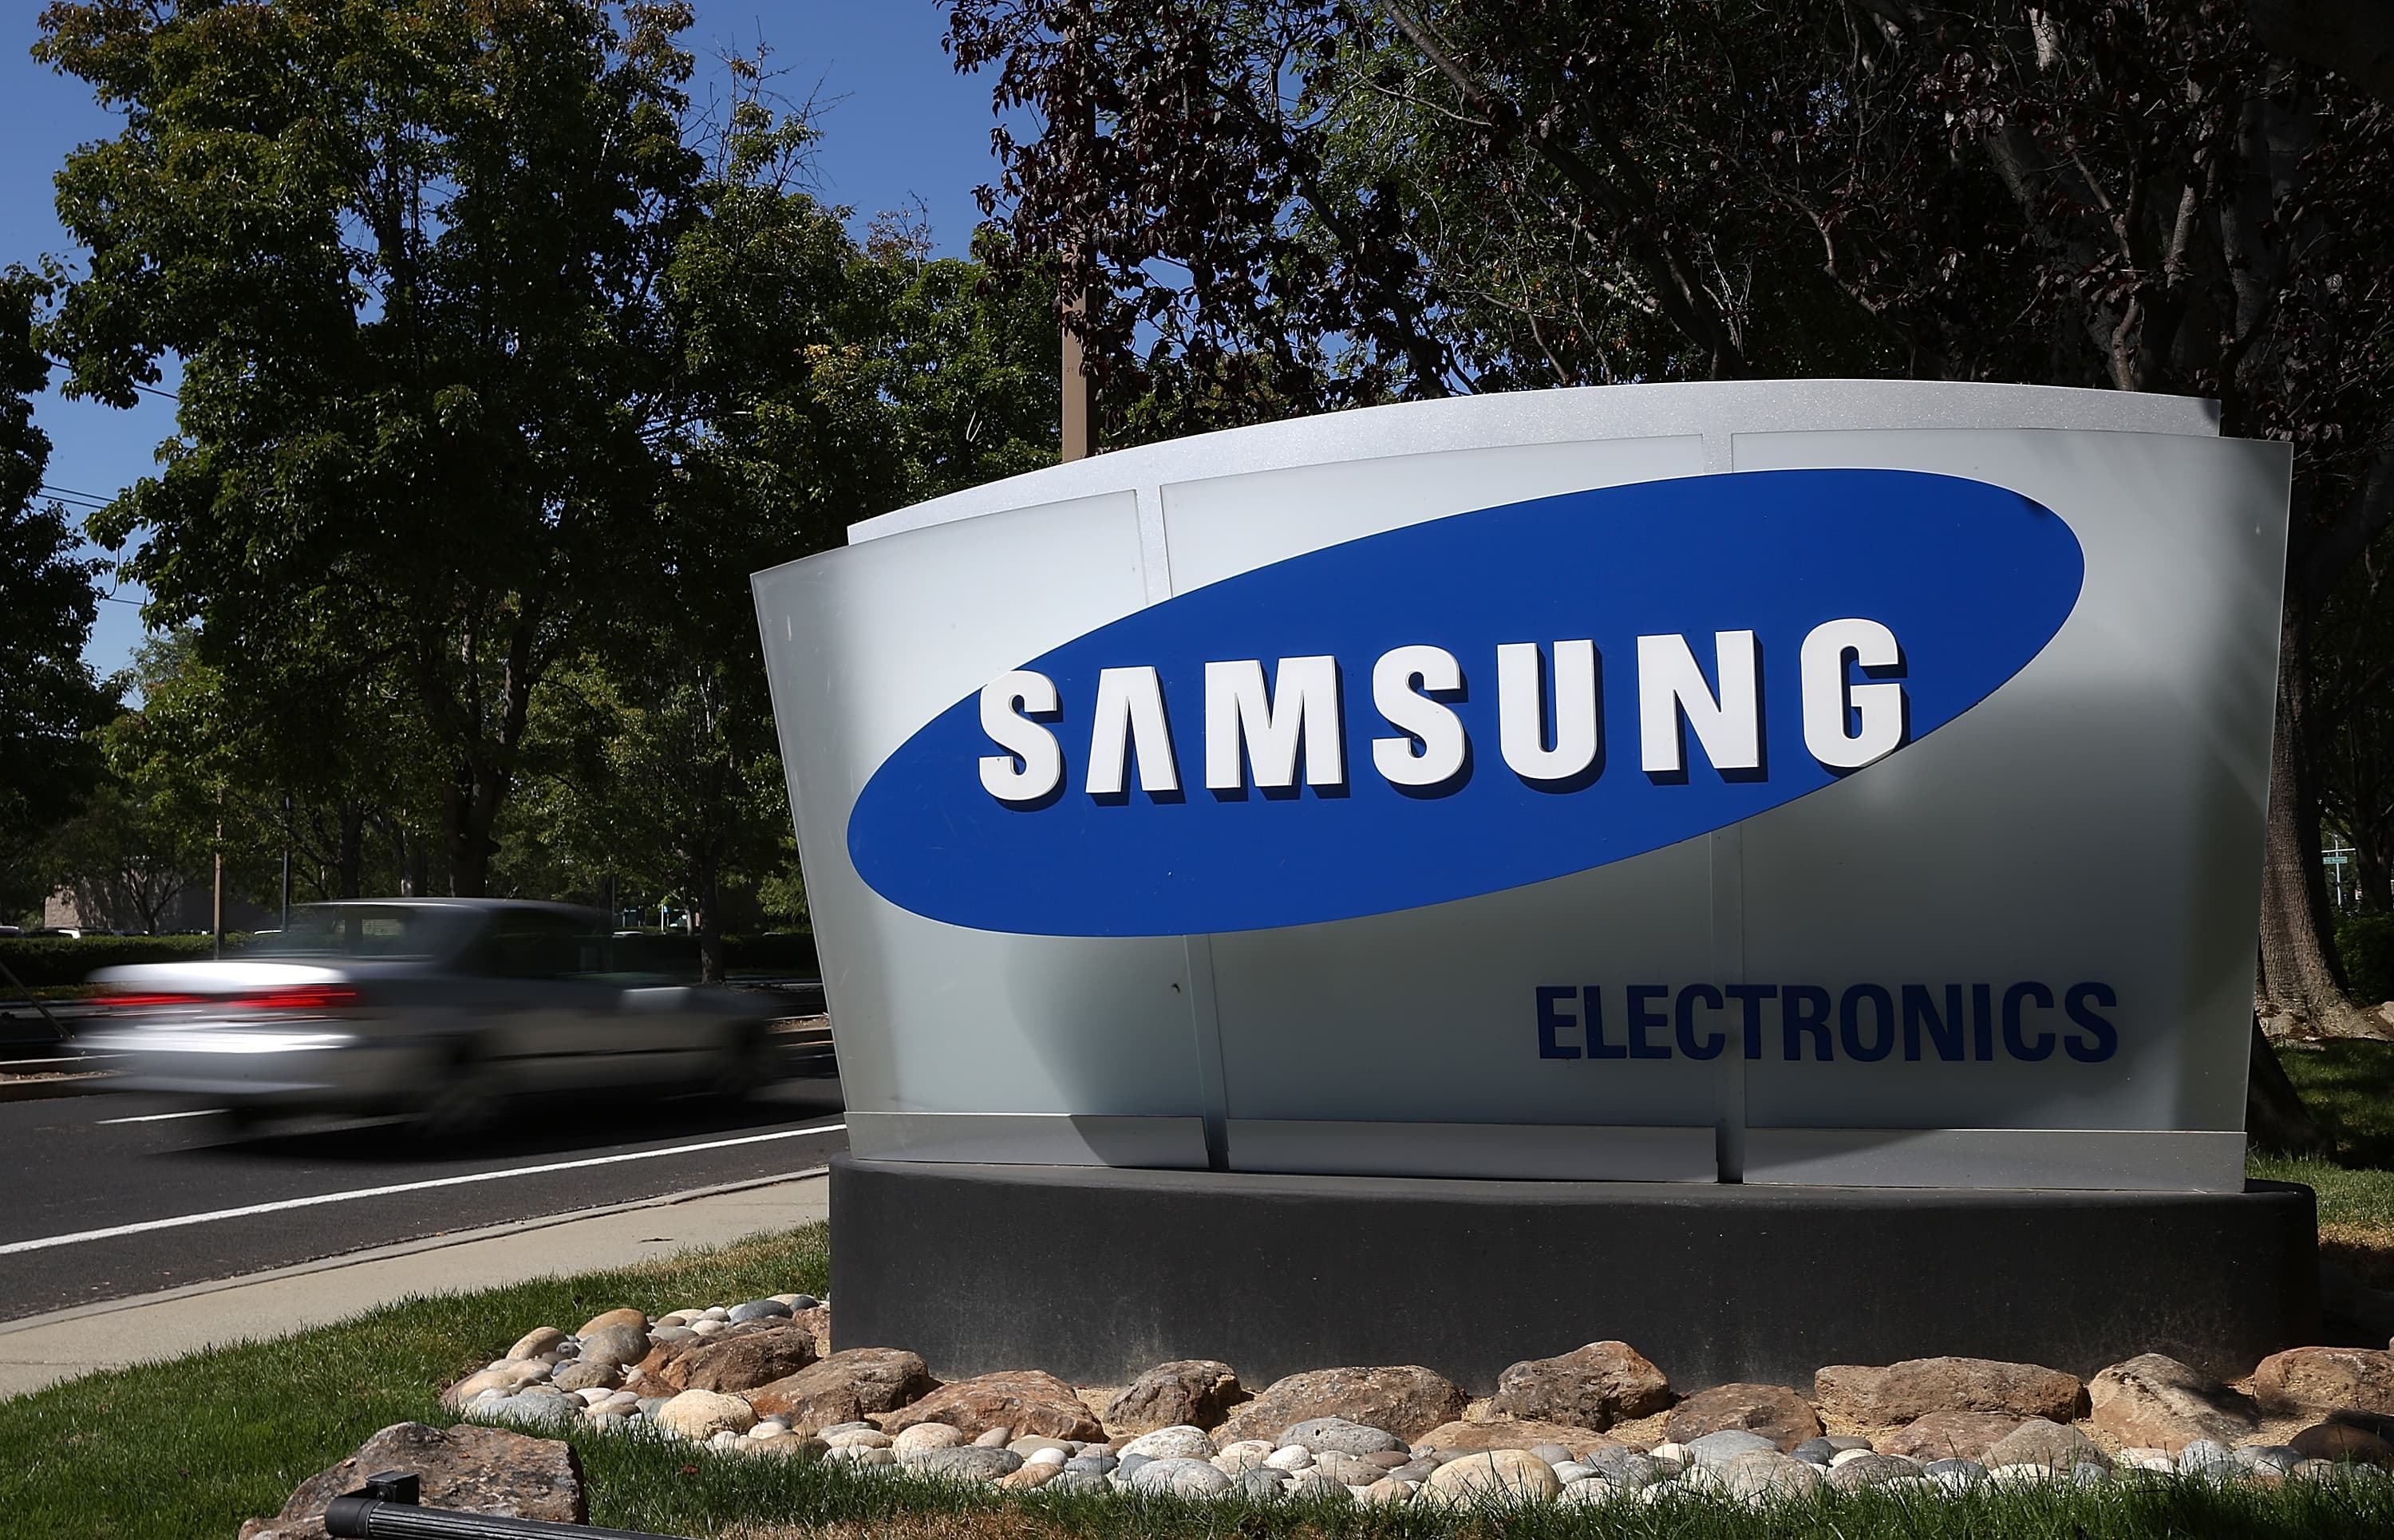 Samsung's high-end smartphones signal the innovation it has in store for the rest of its products analyst says – CNBC